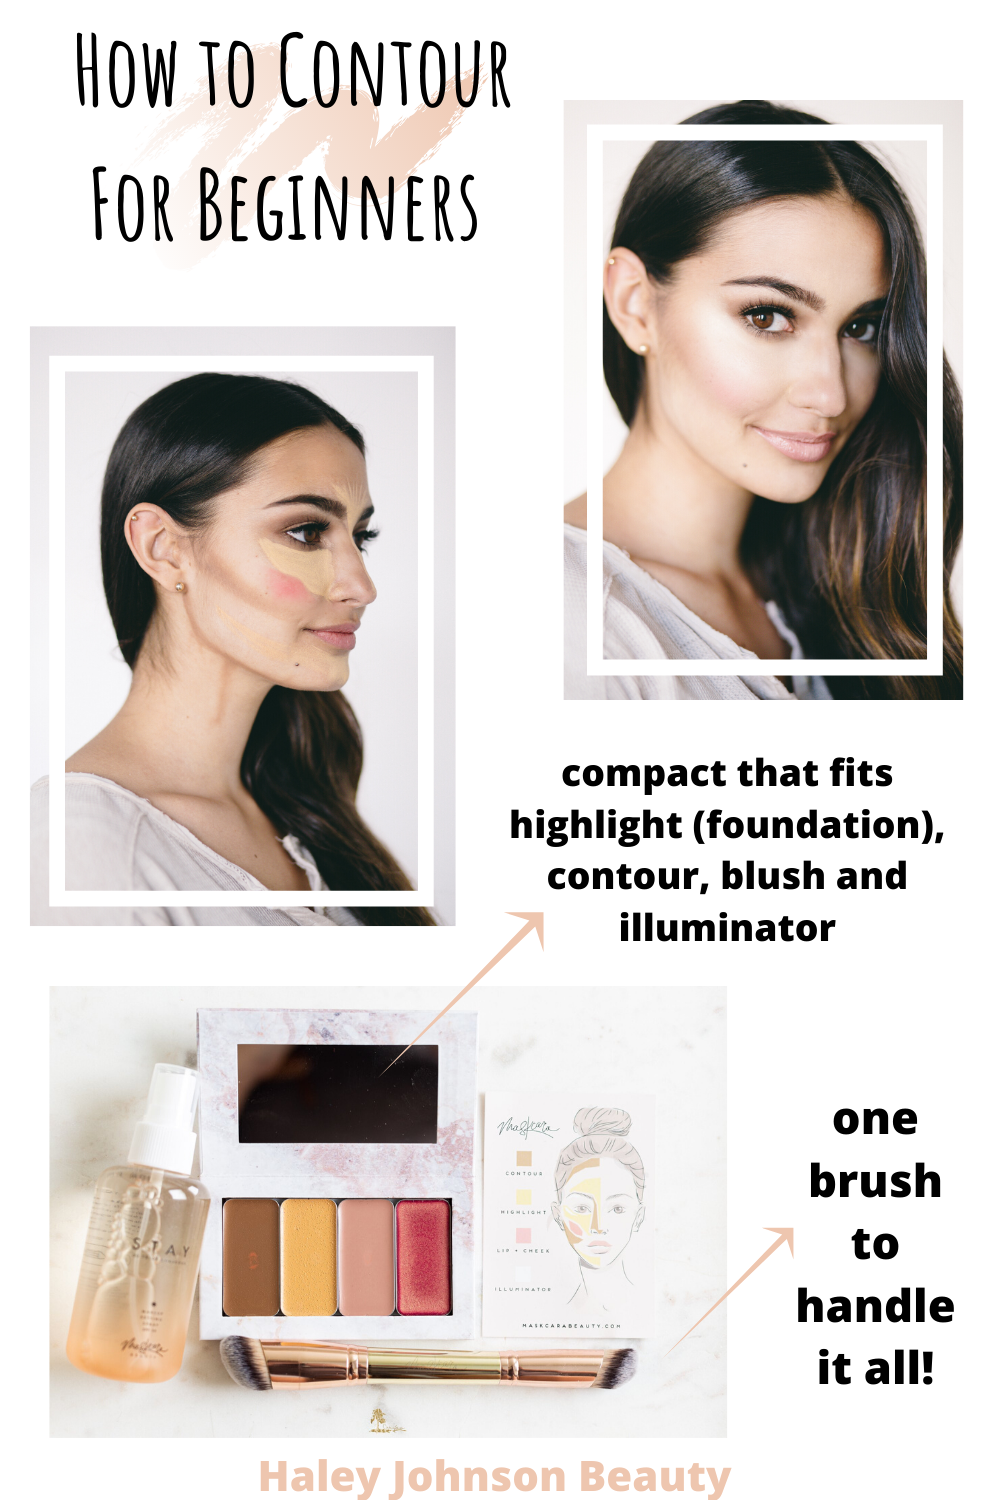 Maskcara Beauty Products in 2020 Contouring for